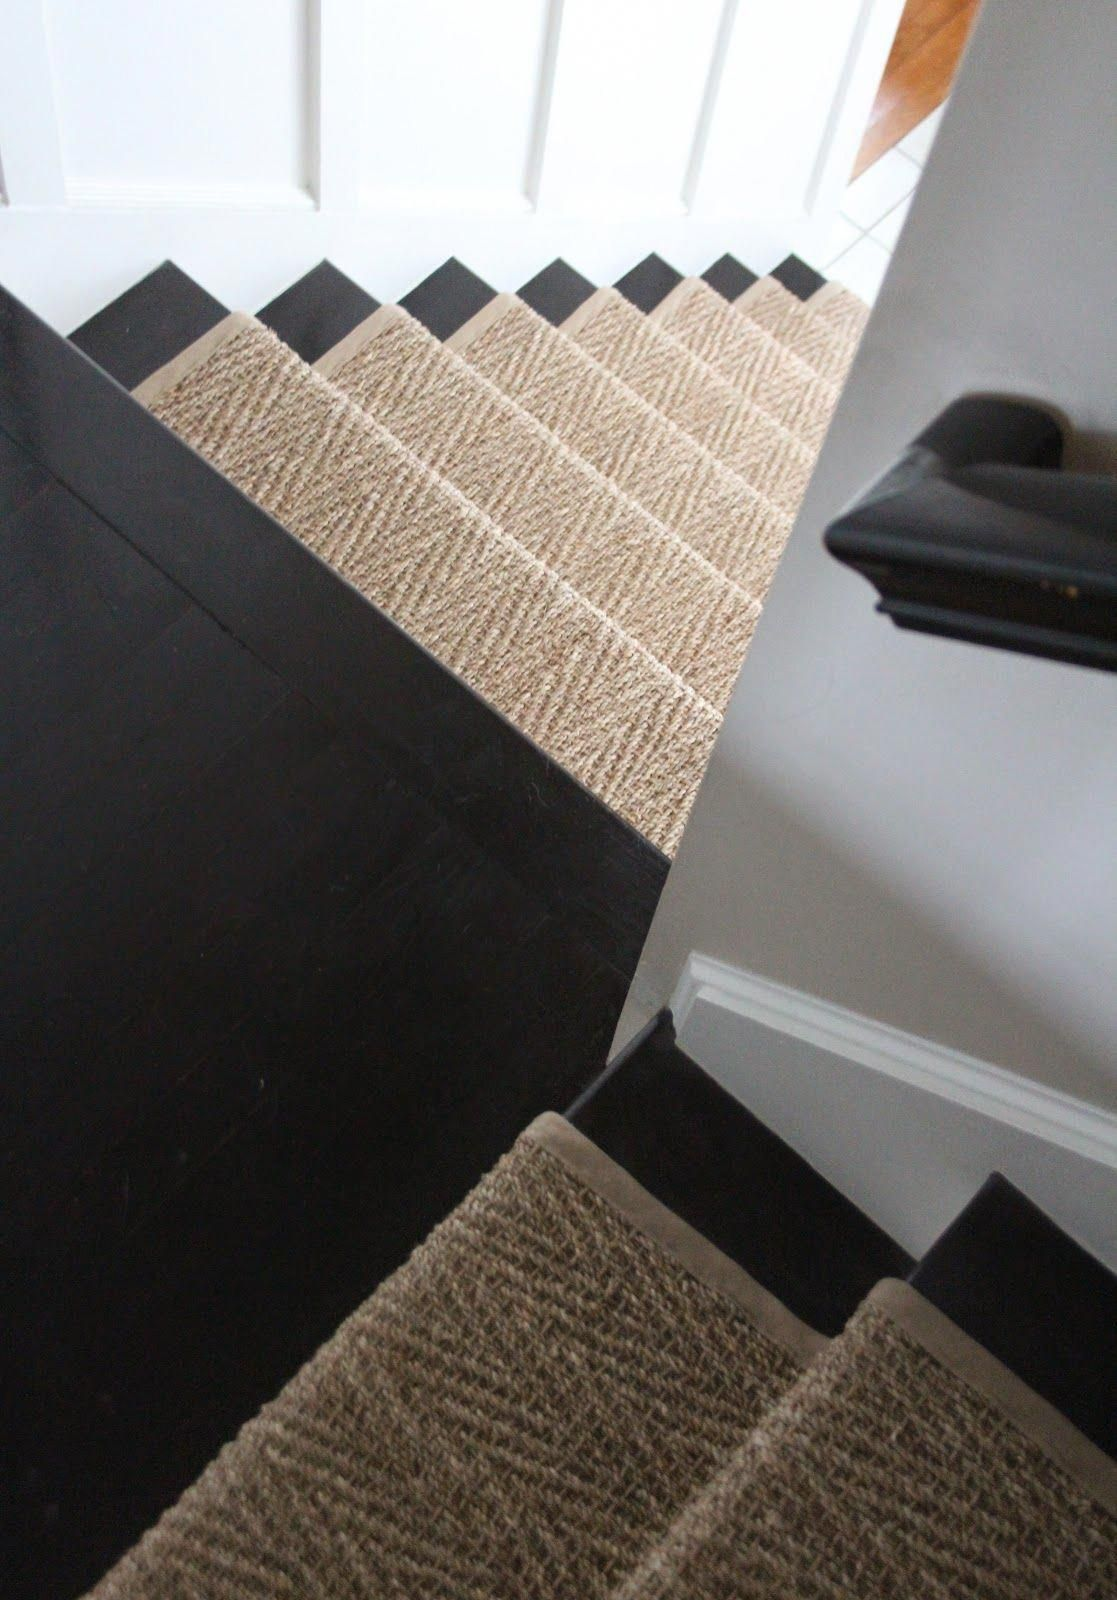 Carpet Runners By The Foot Lowes Carpetrunnerswheretobuy | Lowes Stair Runners By The Foot | Lowes Com | Stair Railing | Stair Climber | Painted Stairs | Carpet Stair